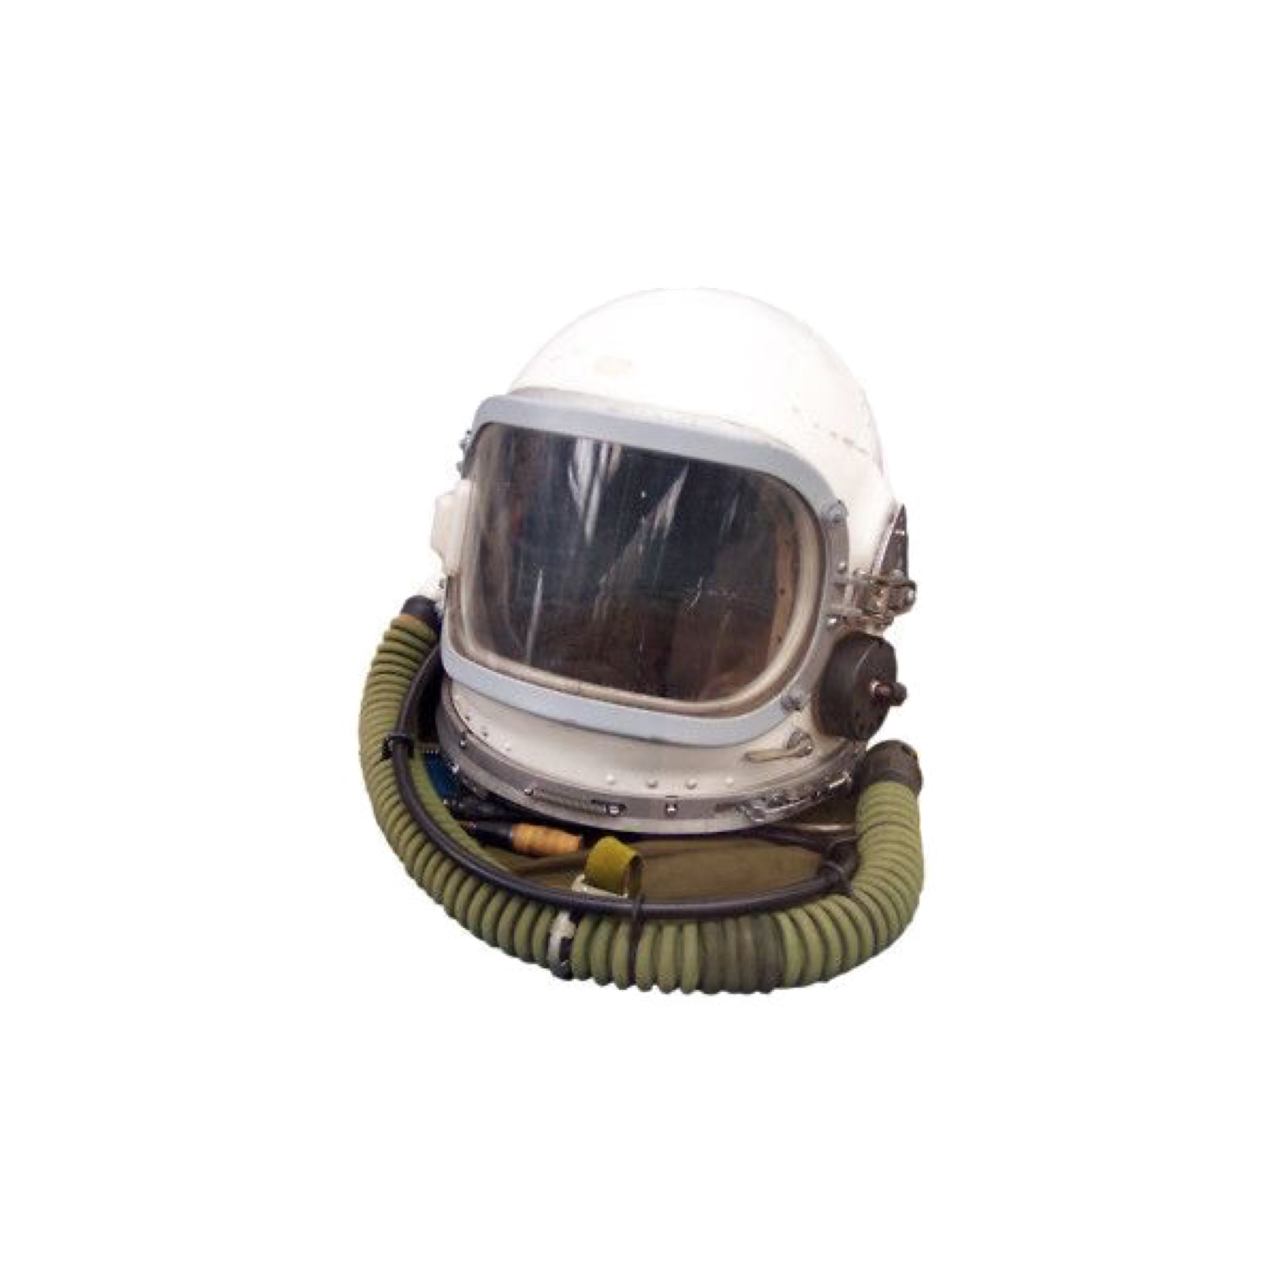 Pngs For Moodboards Requested Pngs Like Or Reblog If Used Aesthetic Space Helmet Red Star